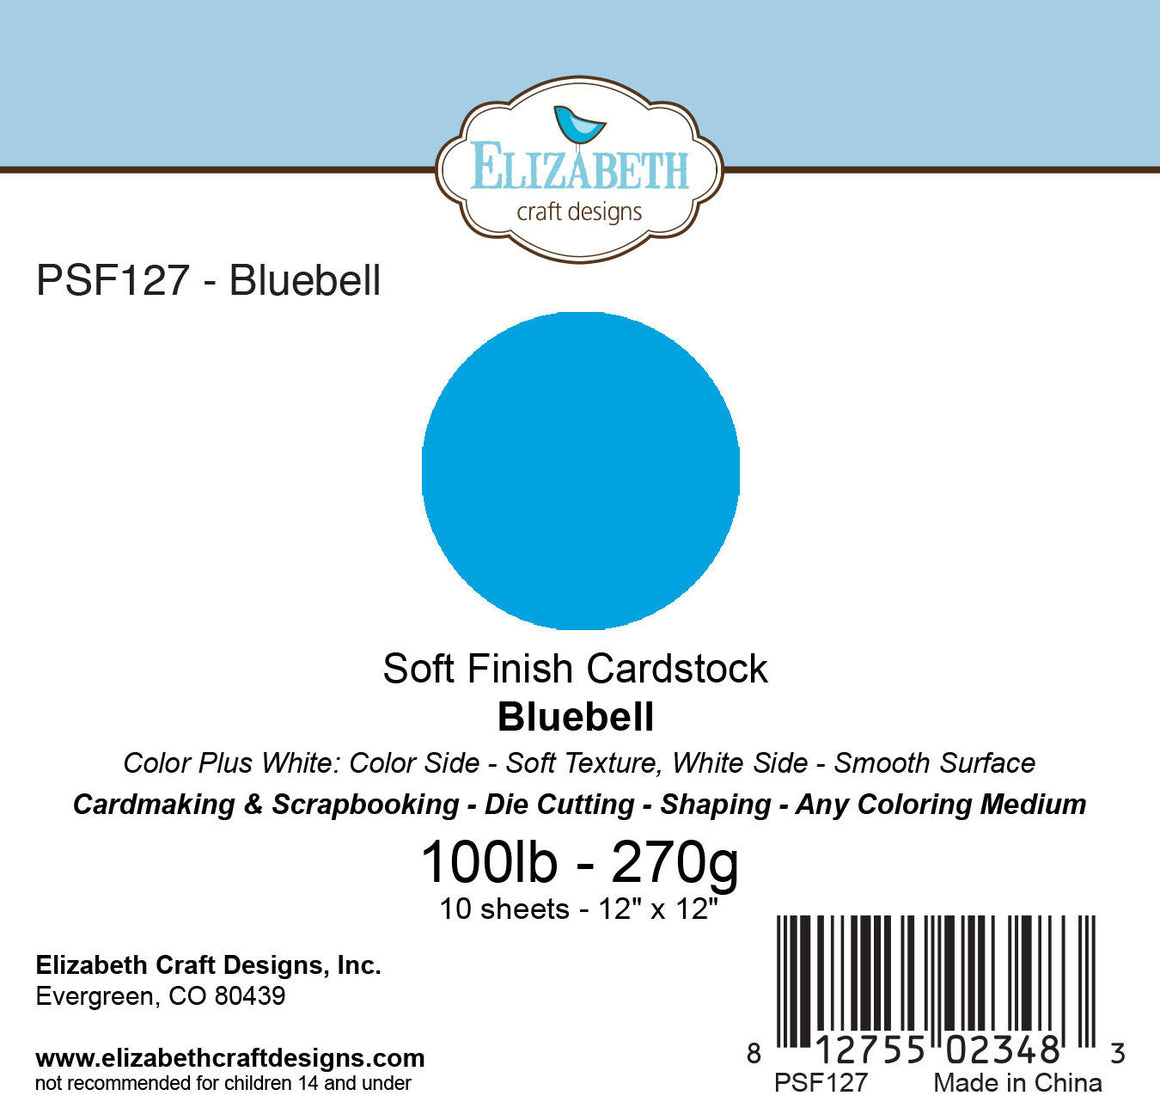 Soft Finish Cardstock, Bluebell